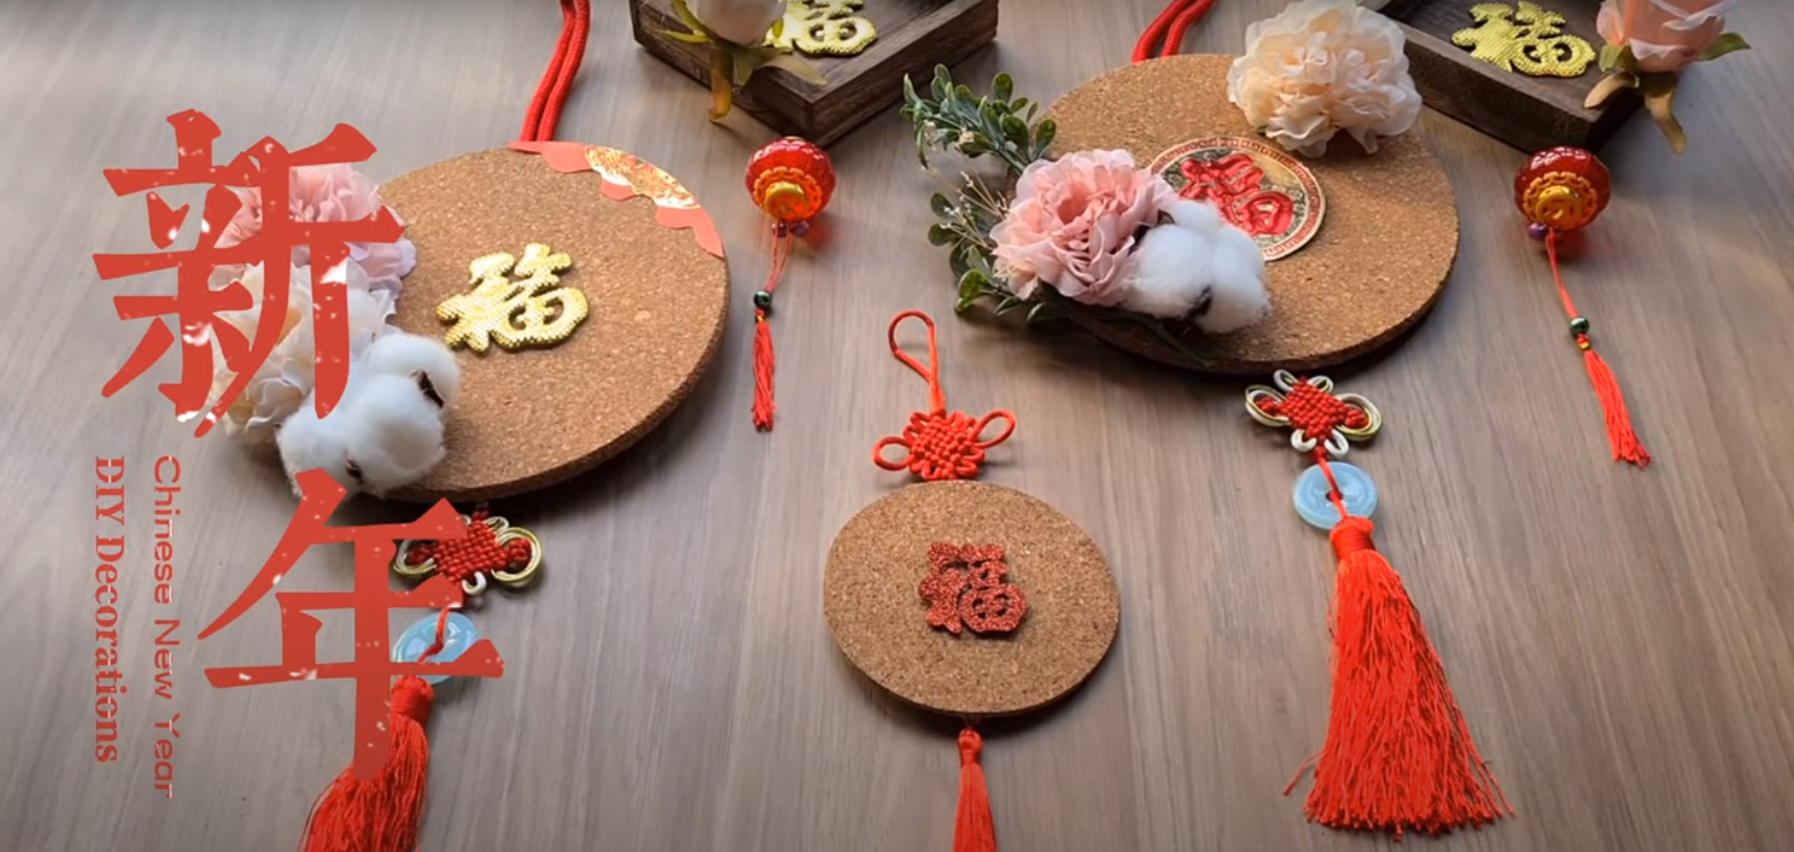 [Video] DIY Chinese New Year Decorations – Creating Beautiful Hanging Ornaments with Coasters & Wooden Trays